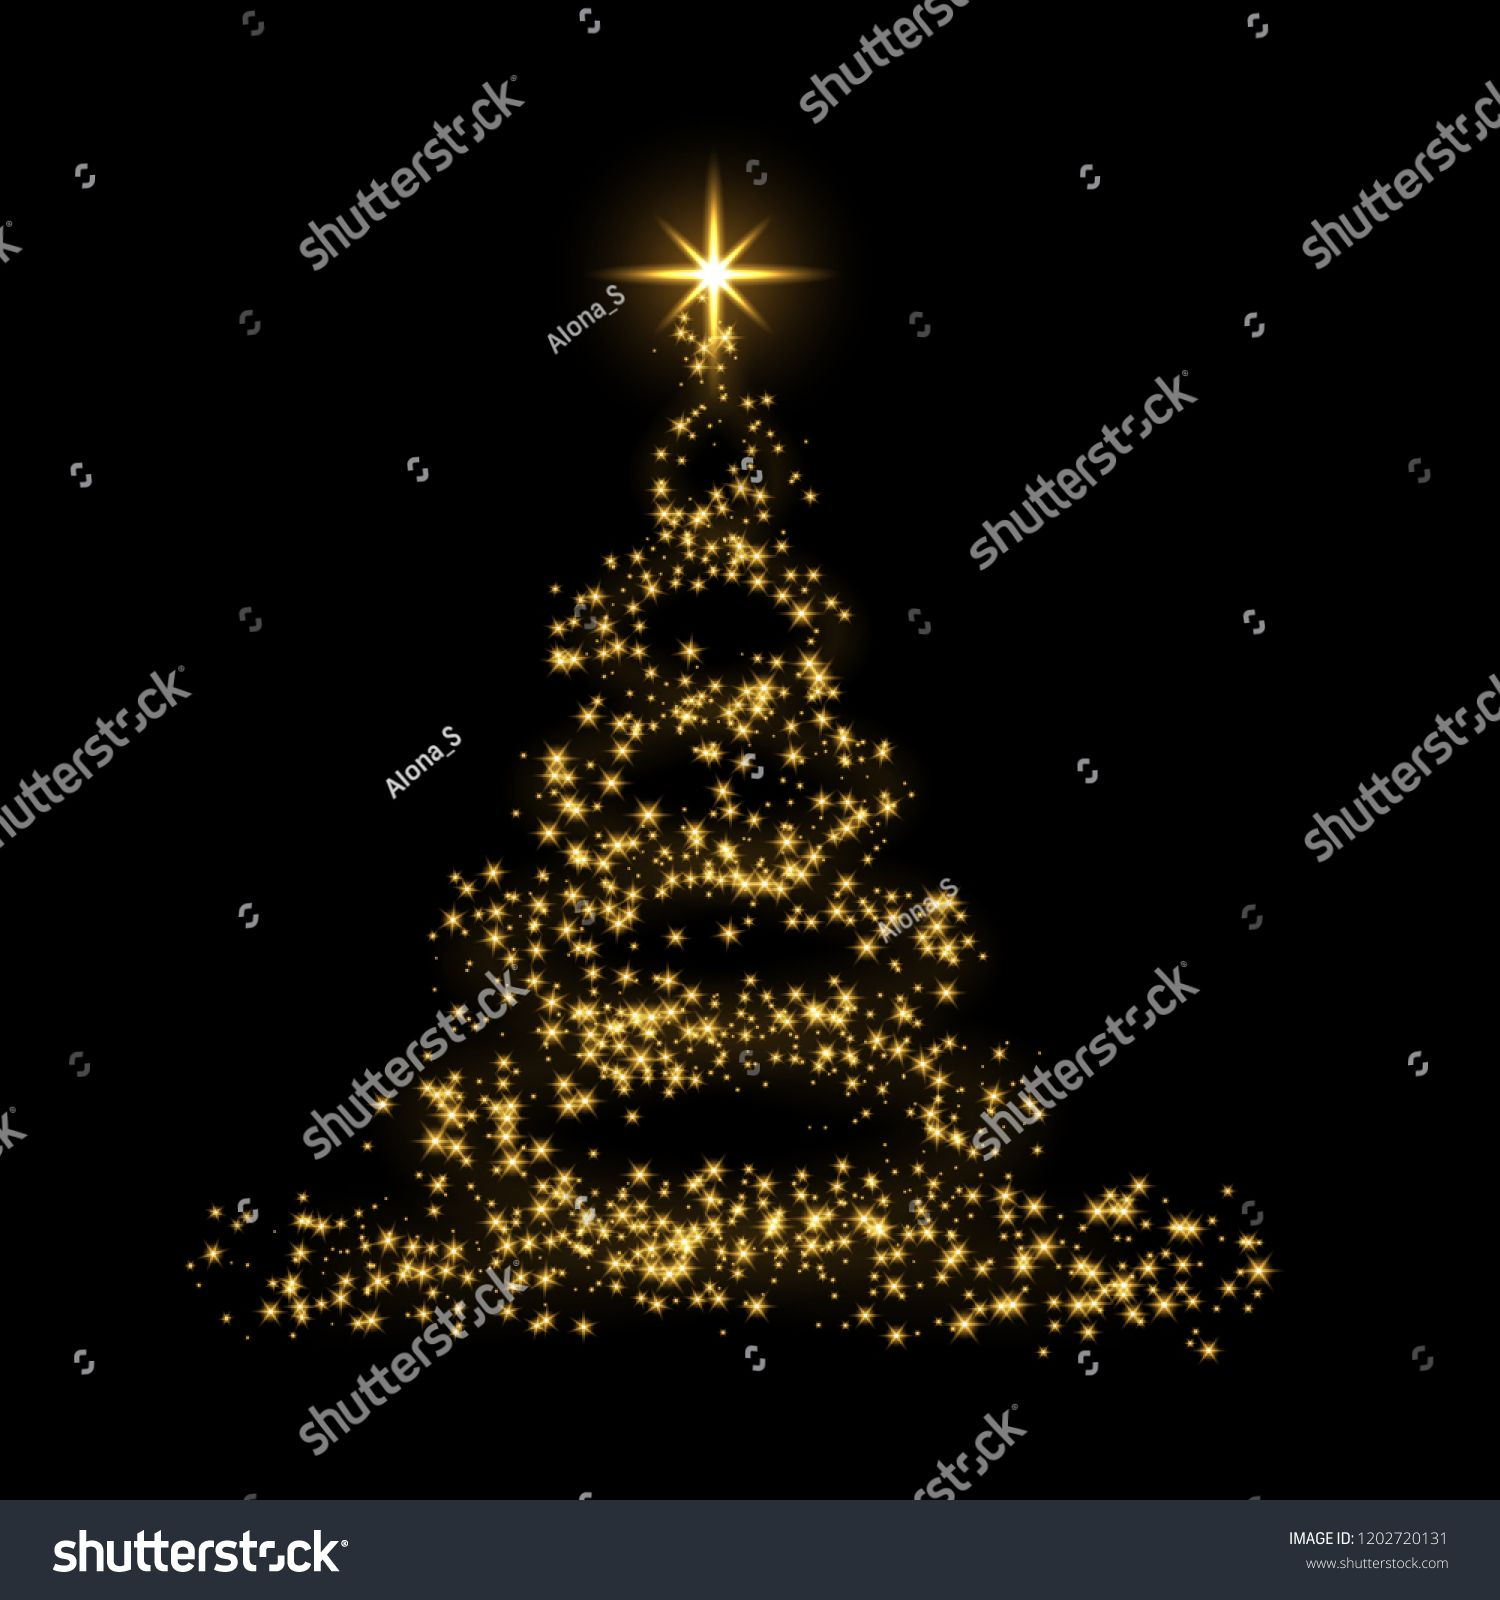 Christmas Tree Card Background Gold Christmas Tree As Symbol Of Happy New Year Merry Christmas Holida Gold Christmas Tree Christmas Tree Cards Gold Christmas